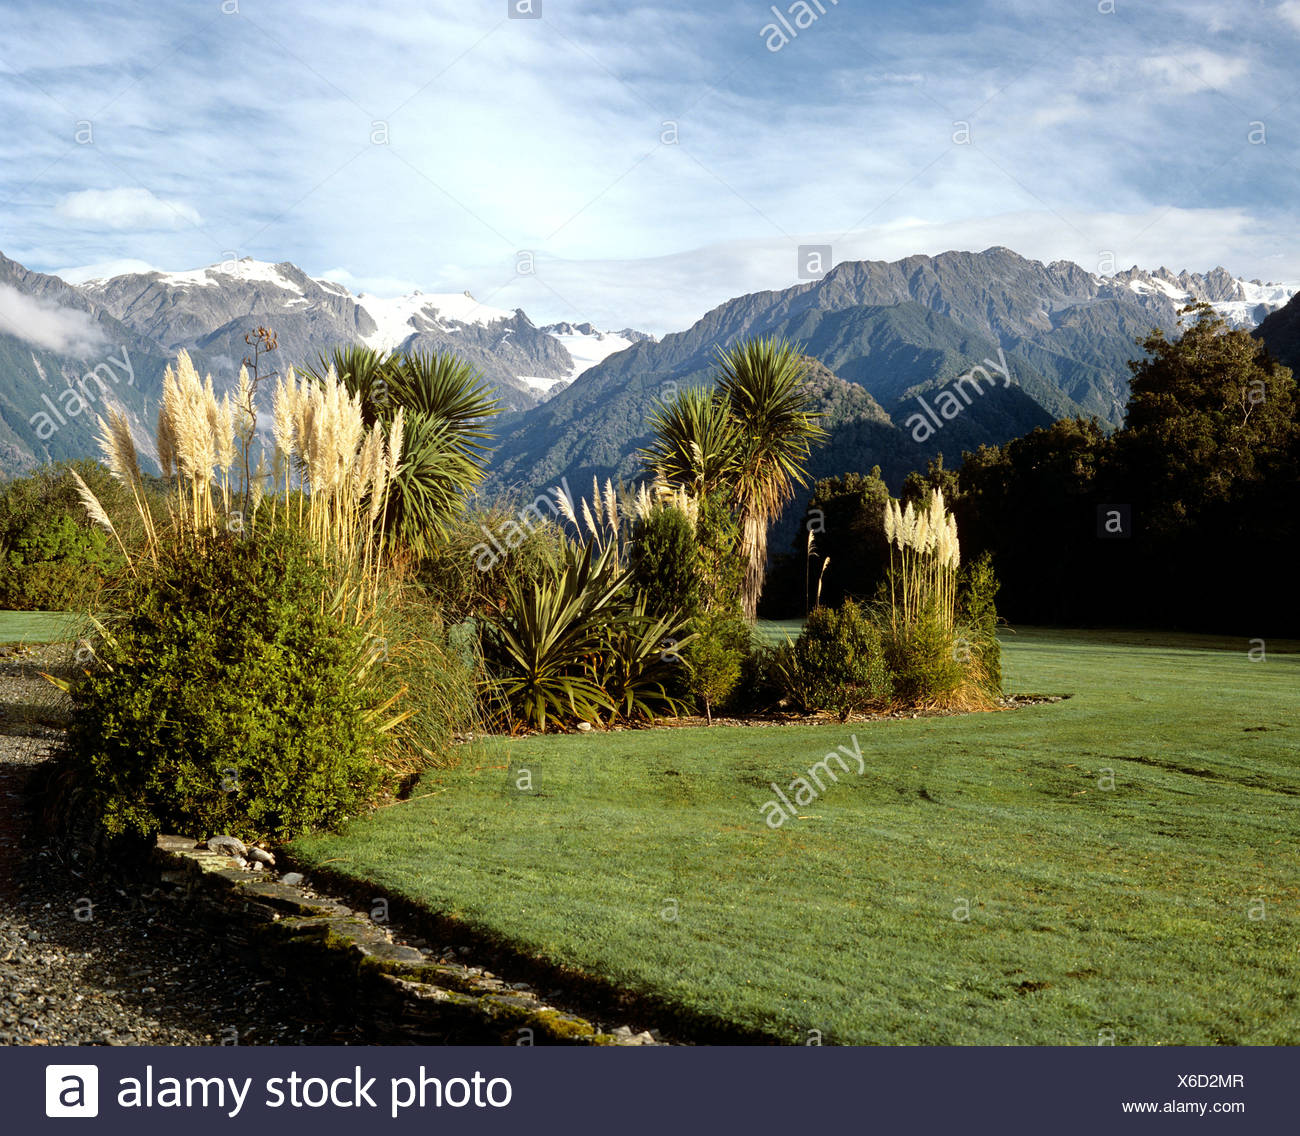 Landscape at the Franz Josef Glacier, South Island, New Zealand - Stock Image